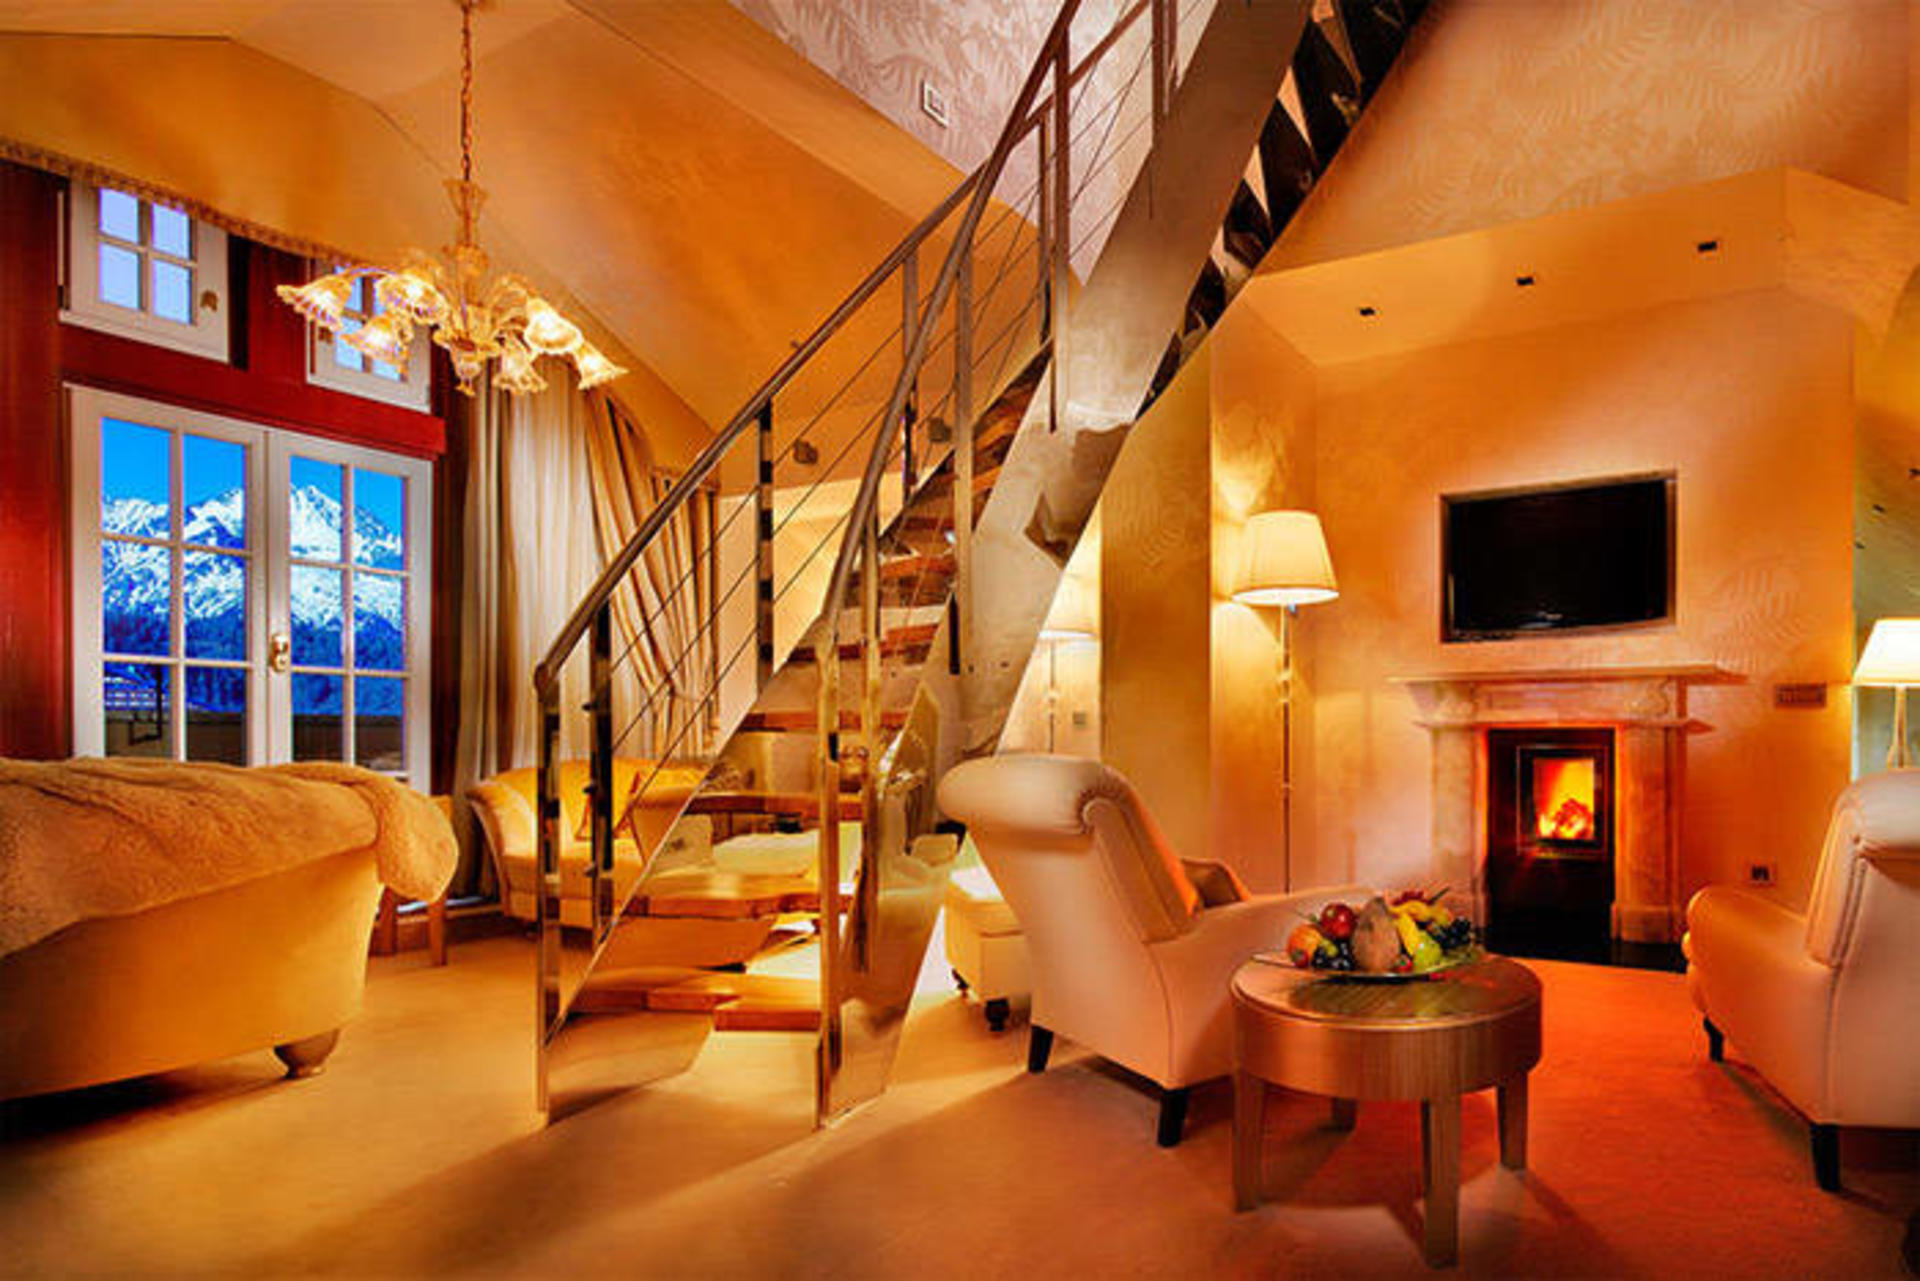 GrandKempinskiHighTatras_Honeymoon-Suite